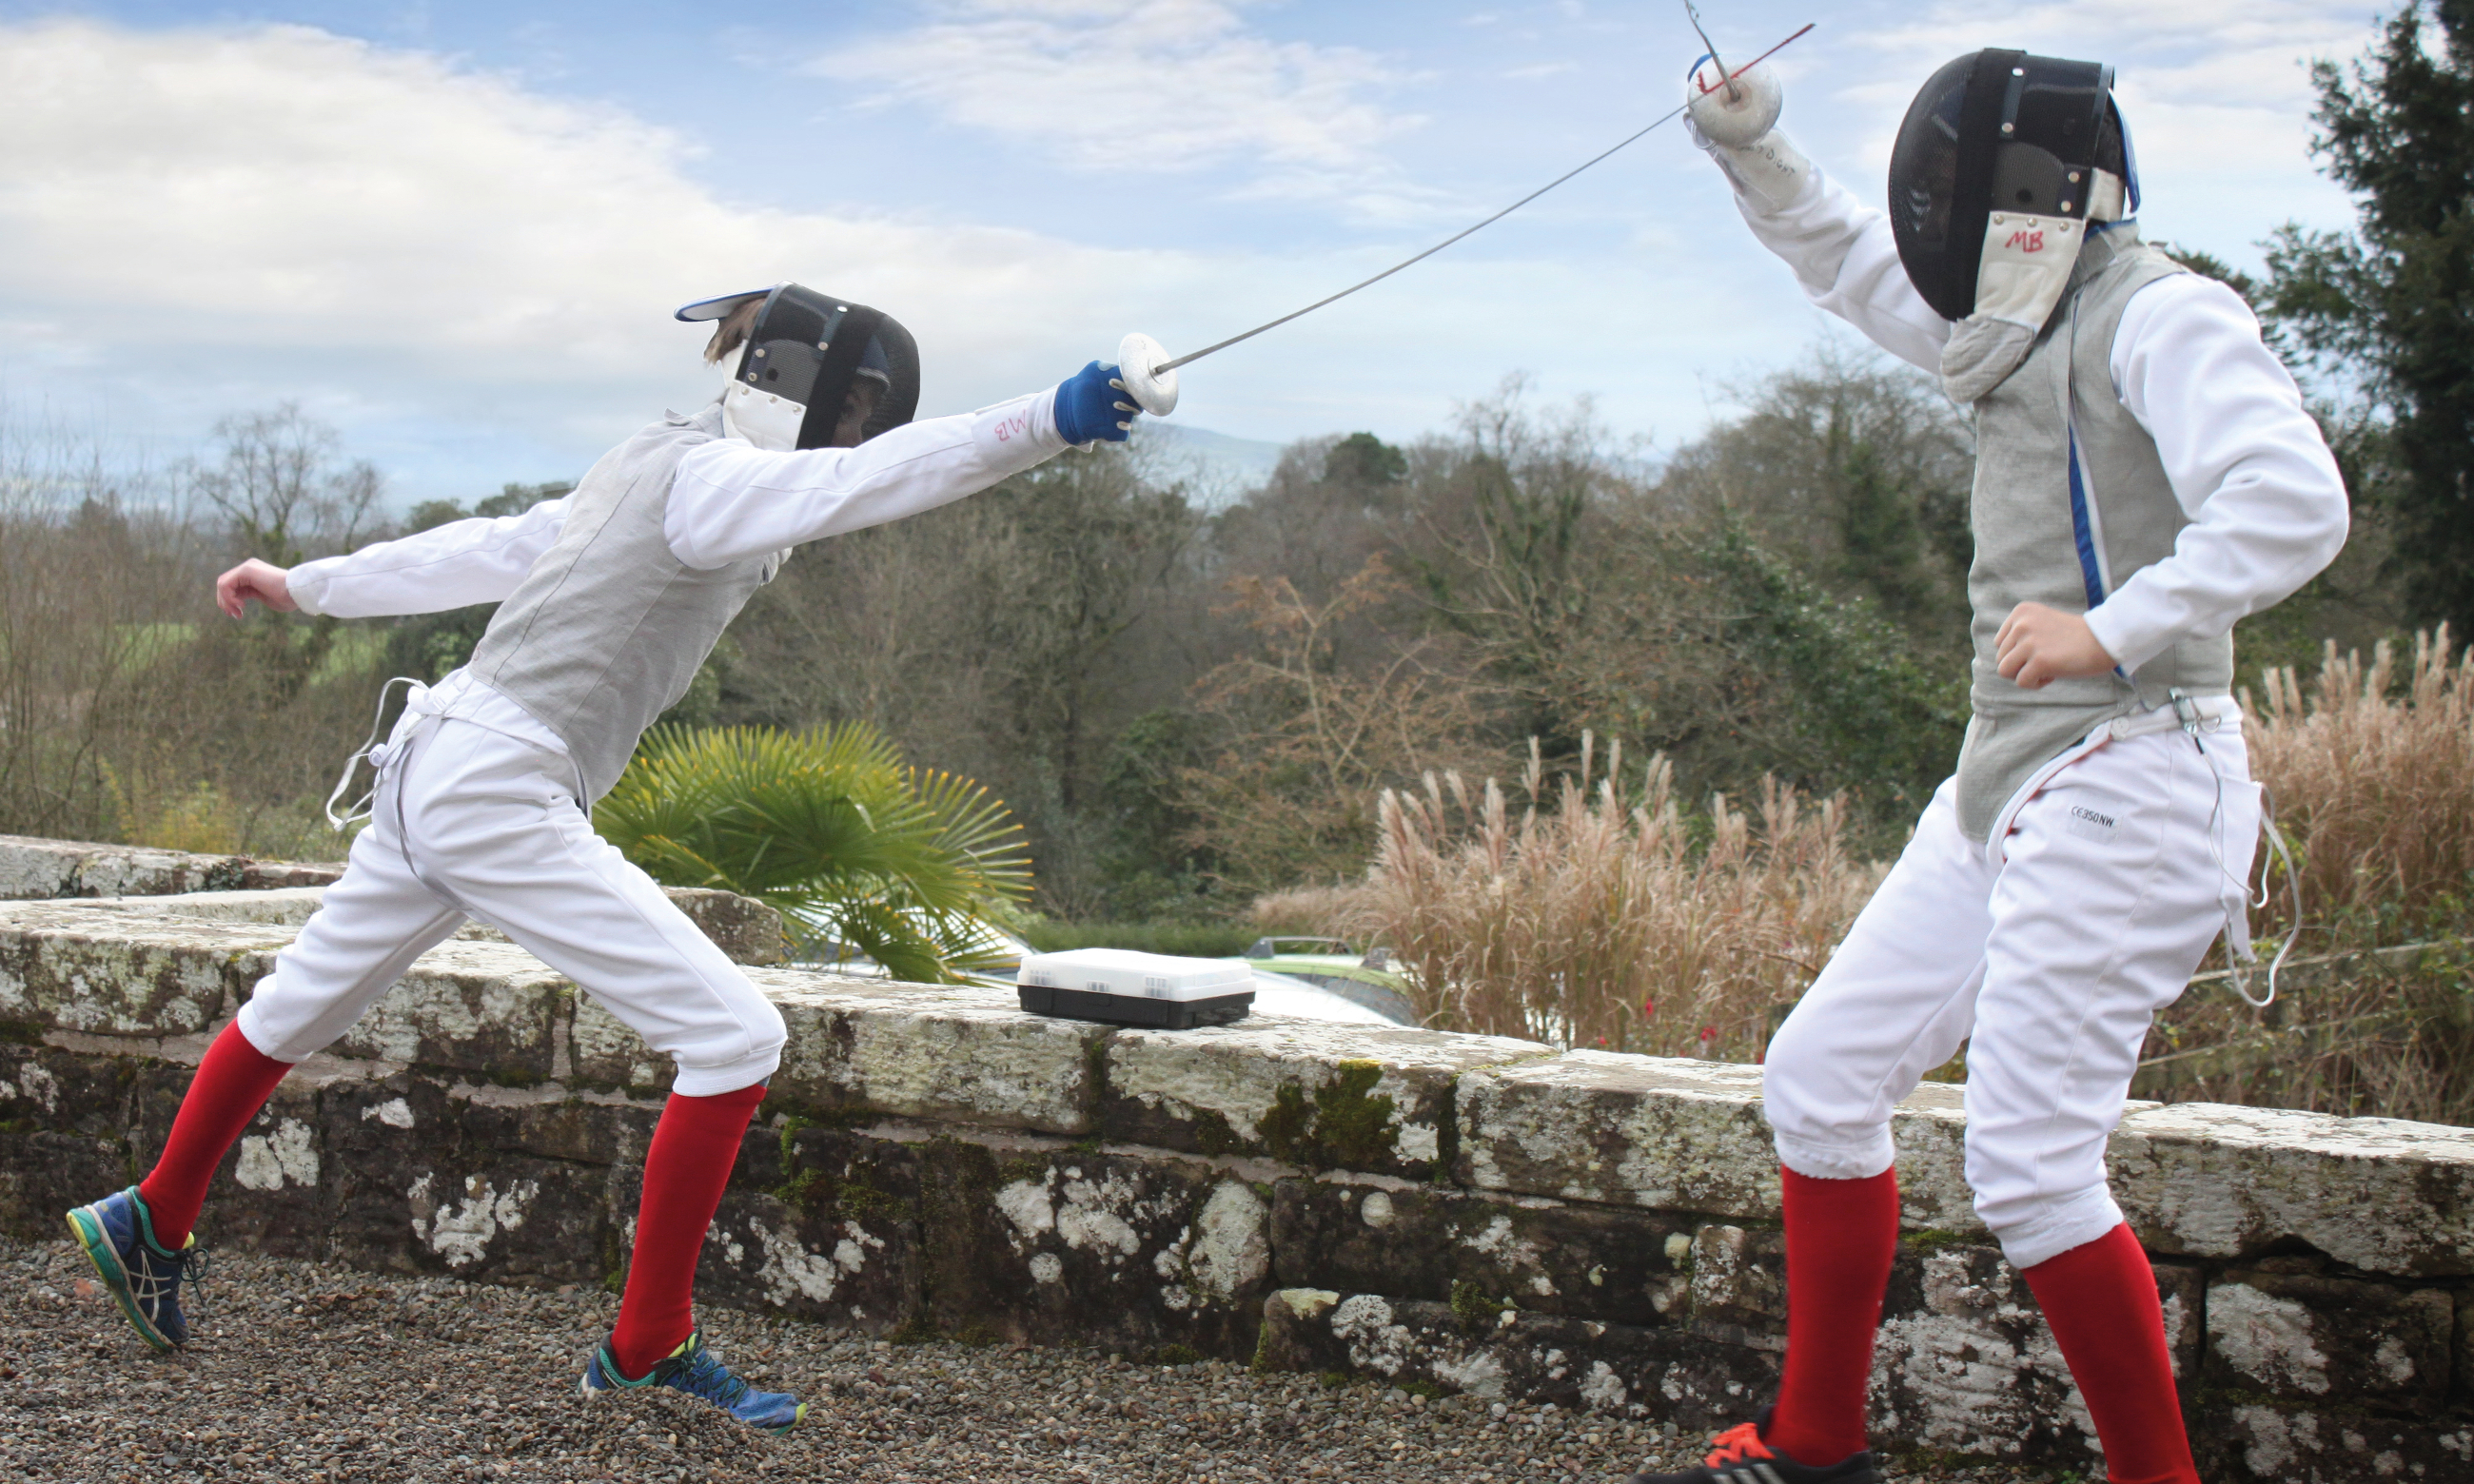 Join the Interschool Fencing Programme